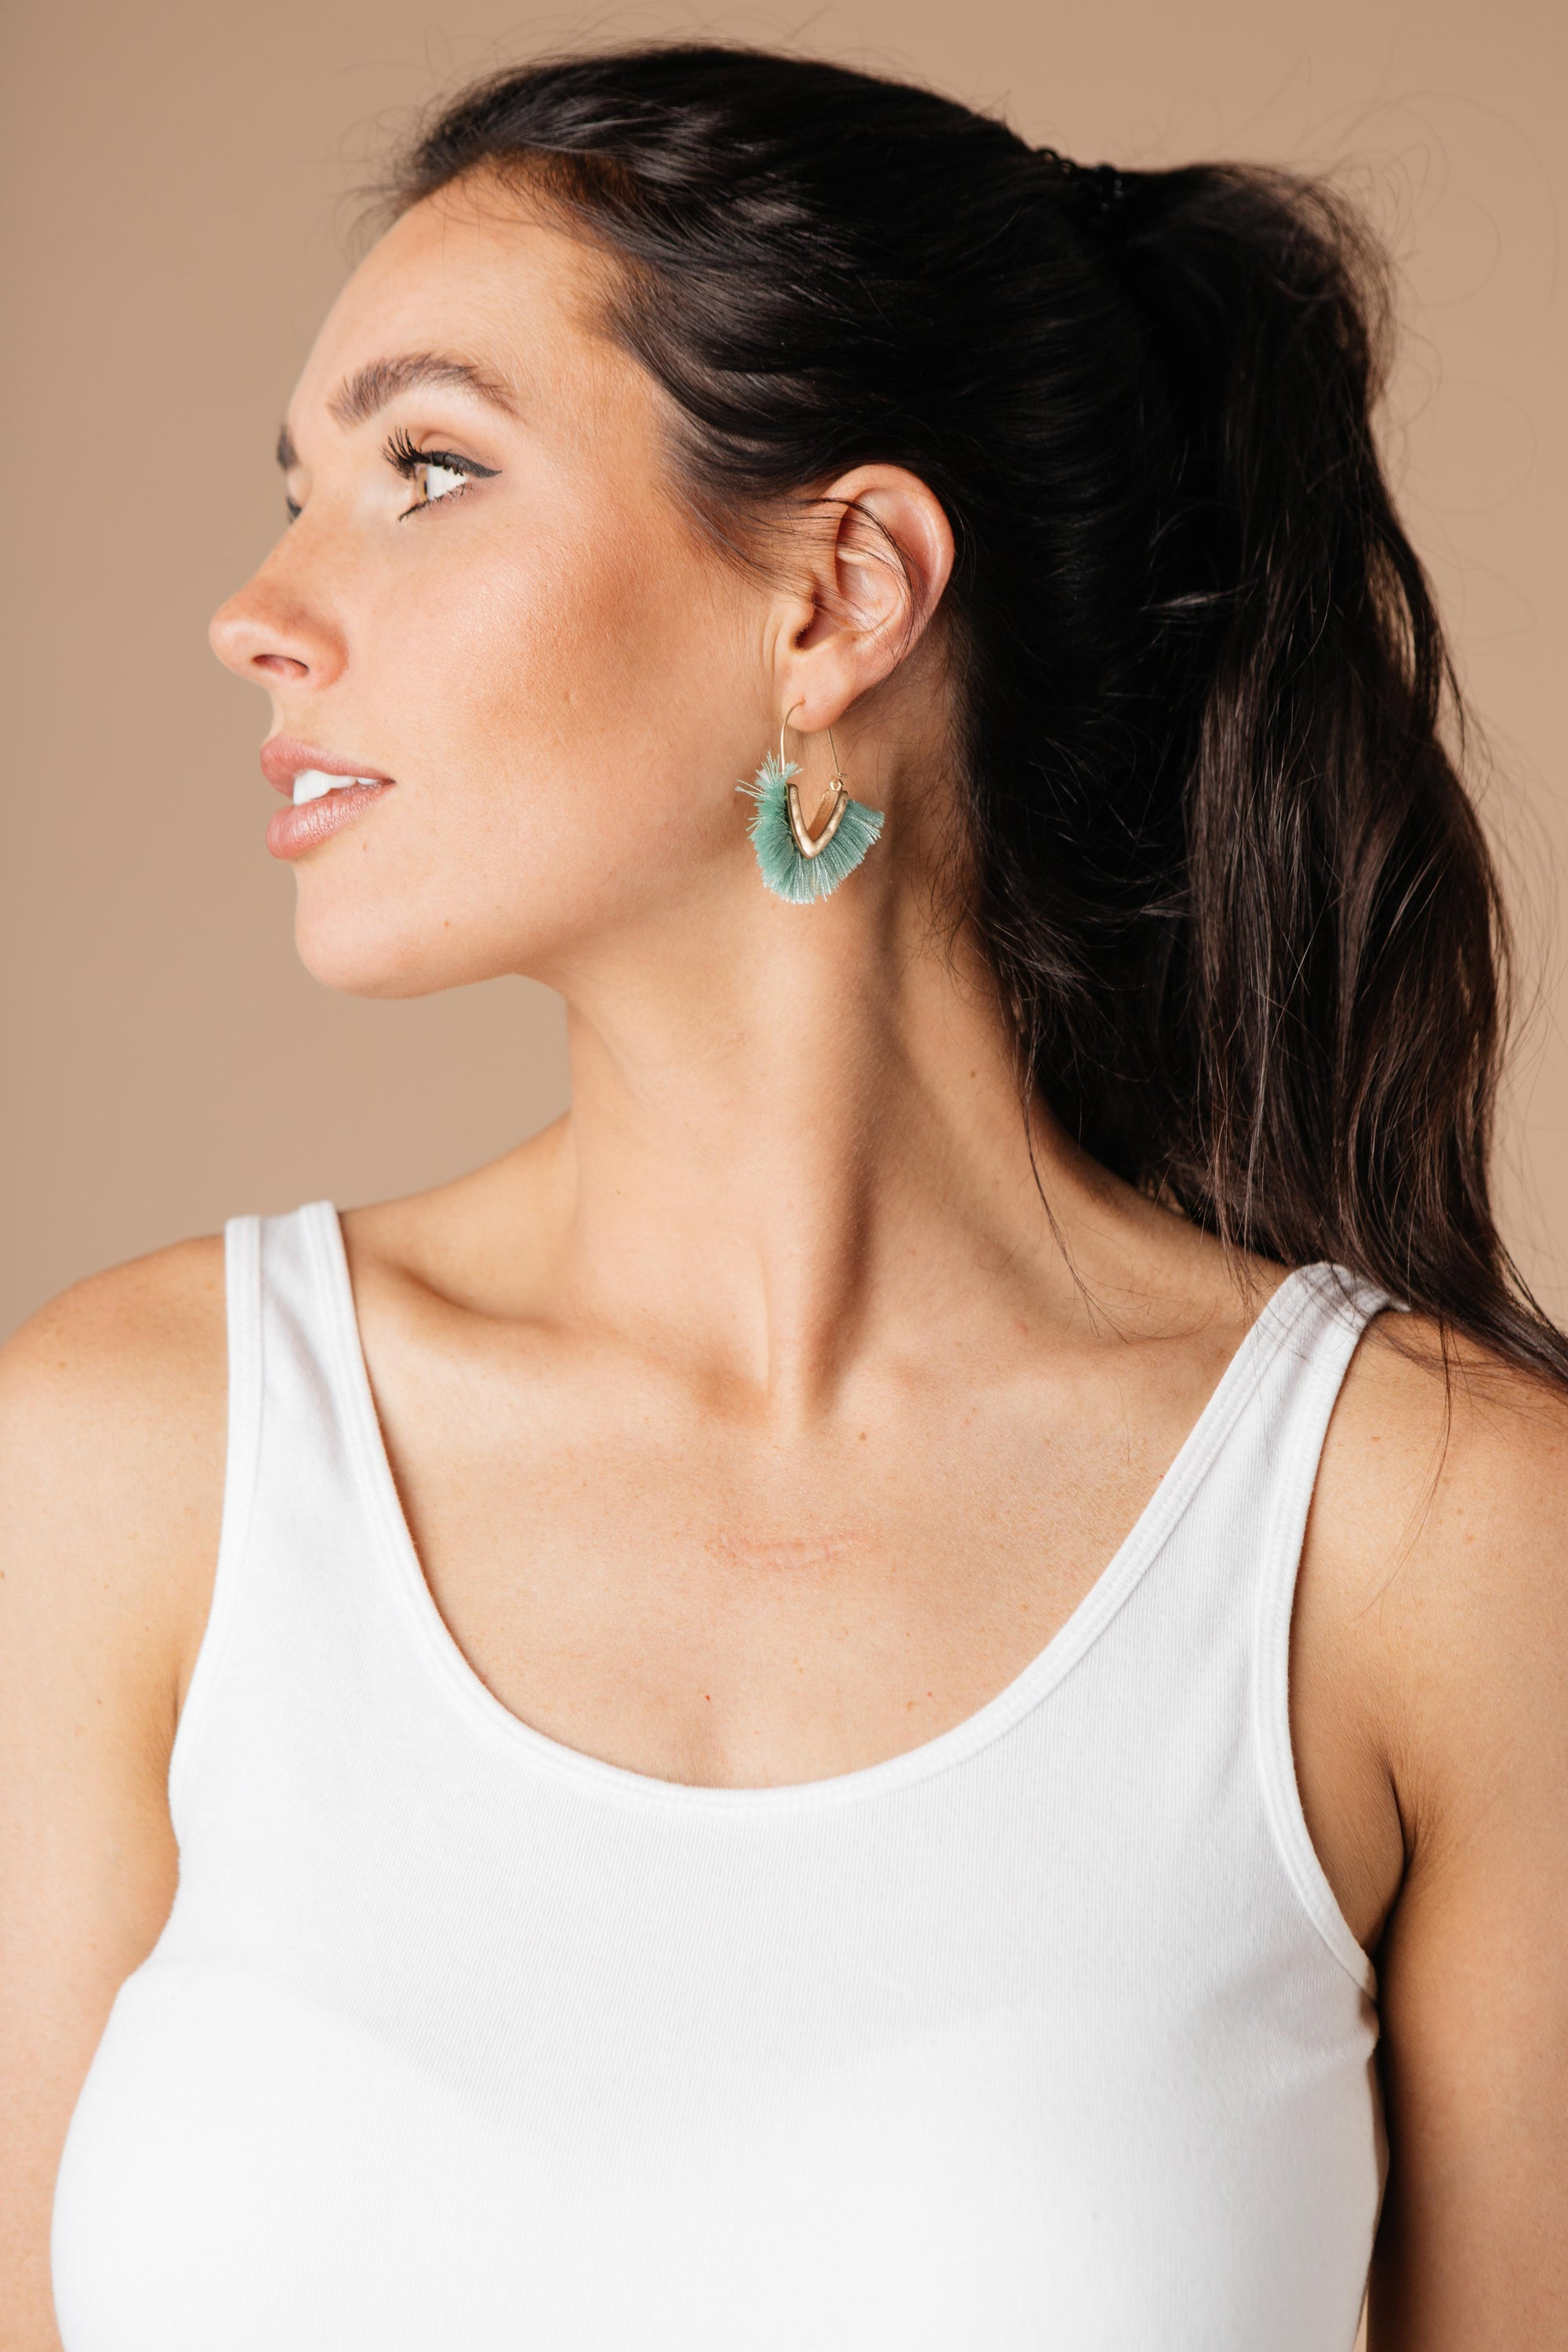 Tasseled V Earrings In MINT-[option4]-[option5]-[option6]-[option7]-[option8]-Womens-Clothing-Shop